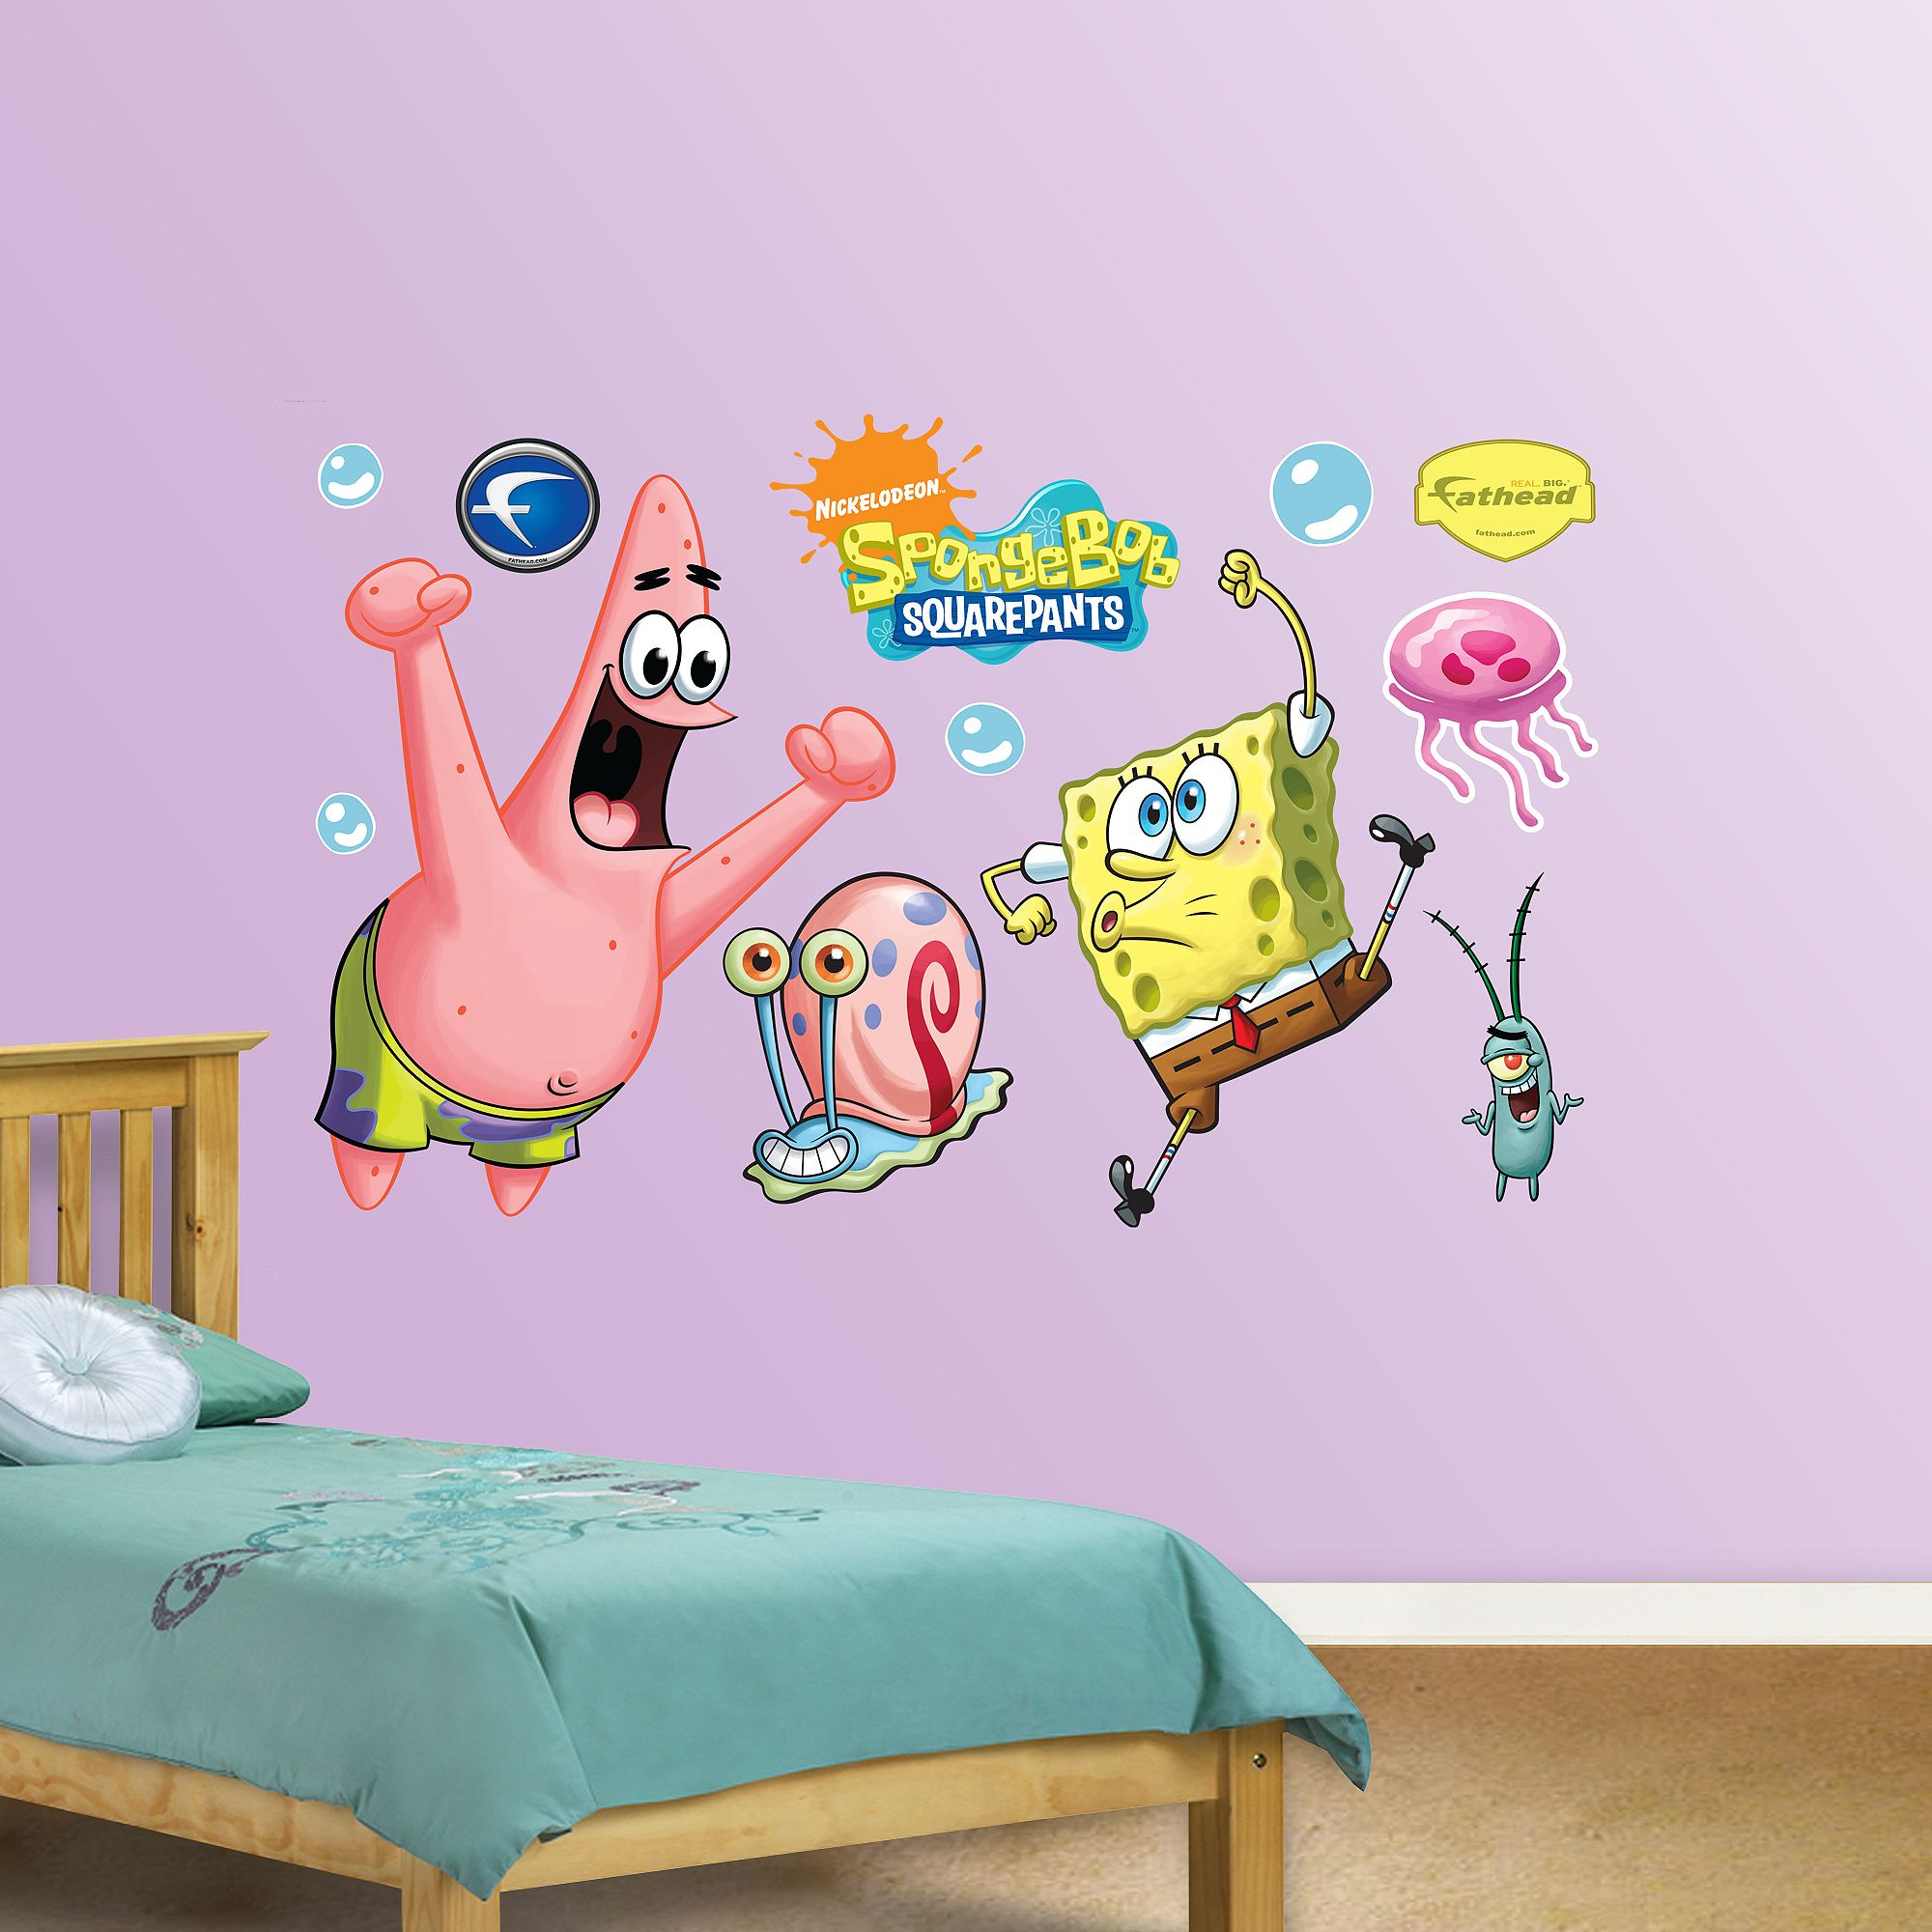 Spongebob And Patrick Disney Wall Decals Pony Wall Disney Wall